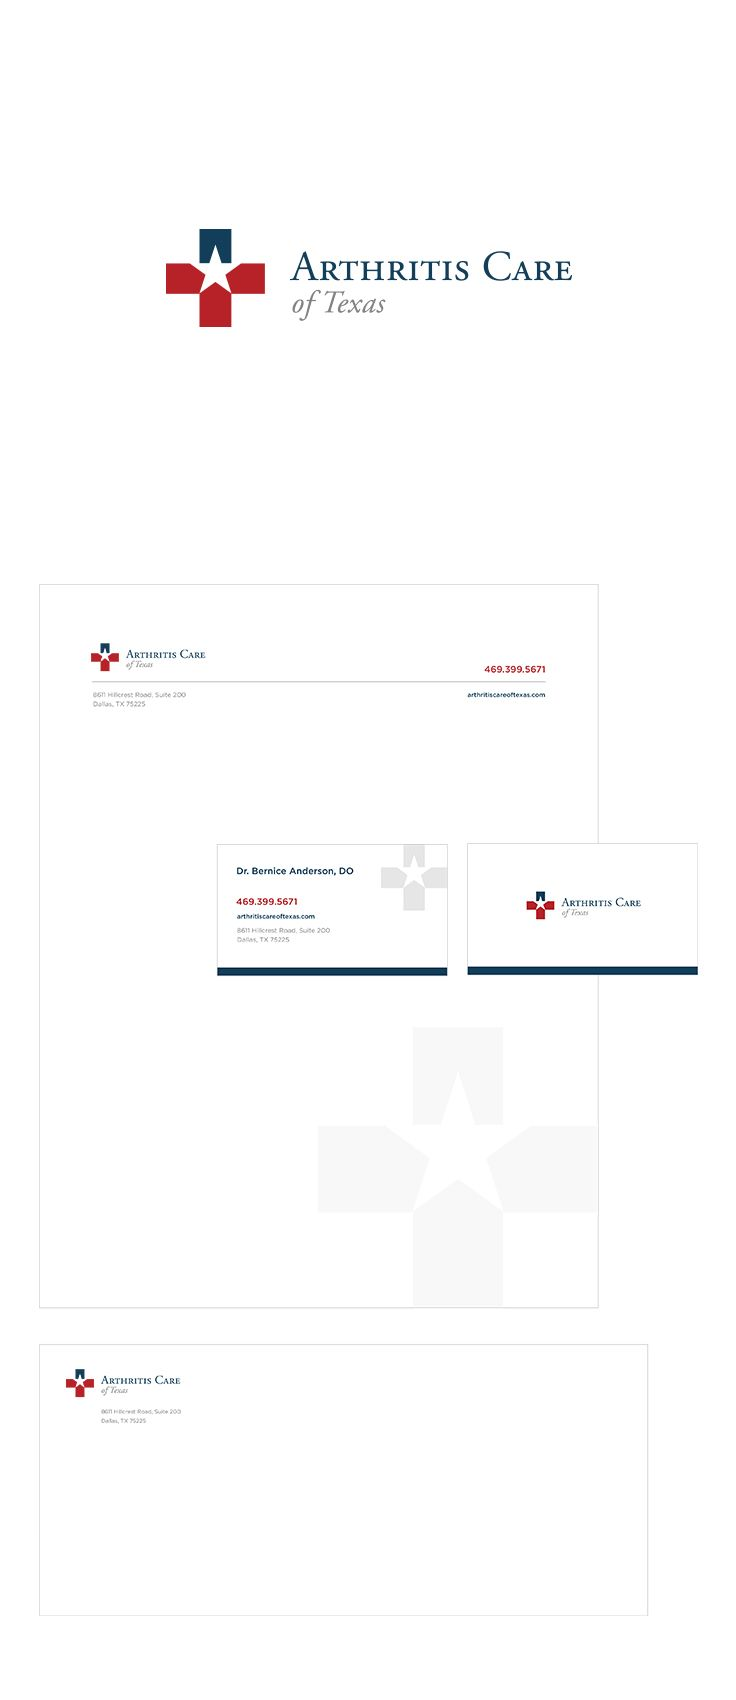 Arthritis Care of Texas Logo Design & Stationary #epicmarketing #graphicdesign #logo #stationary #visualidentity